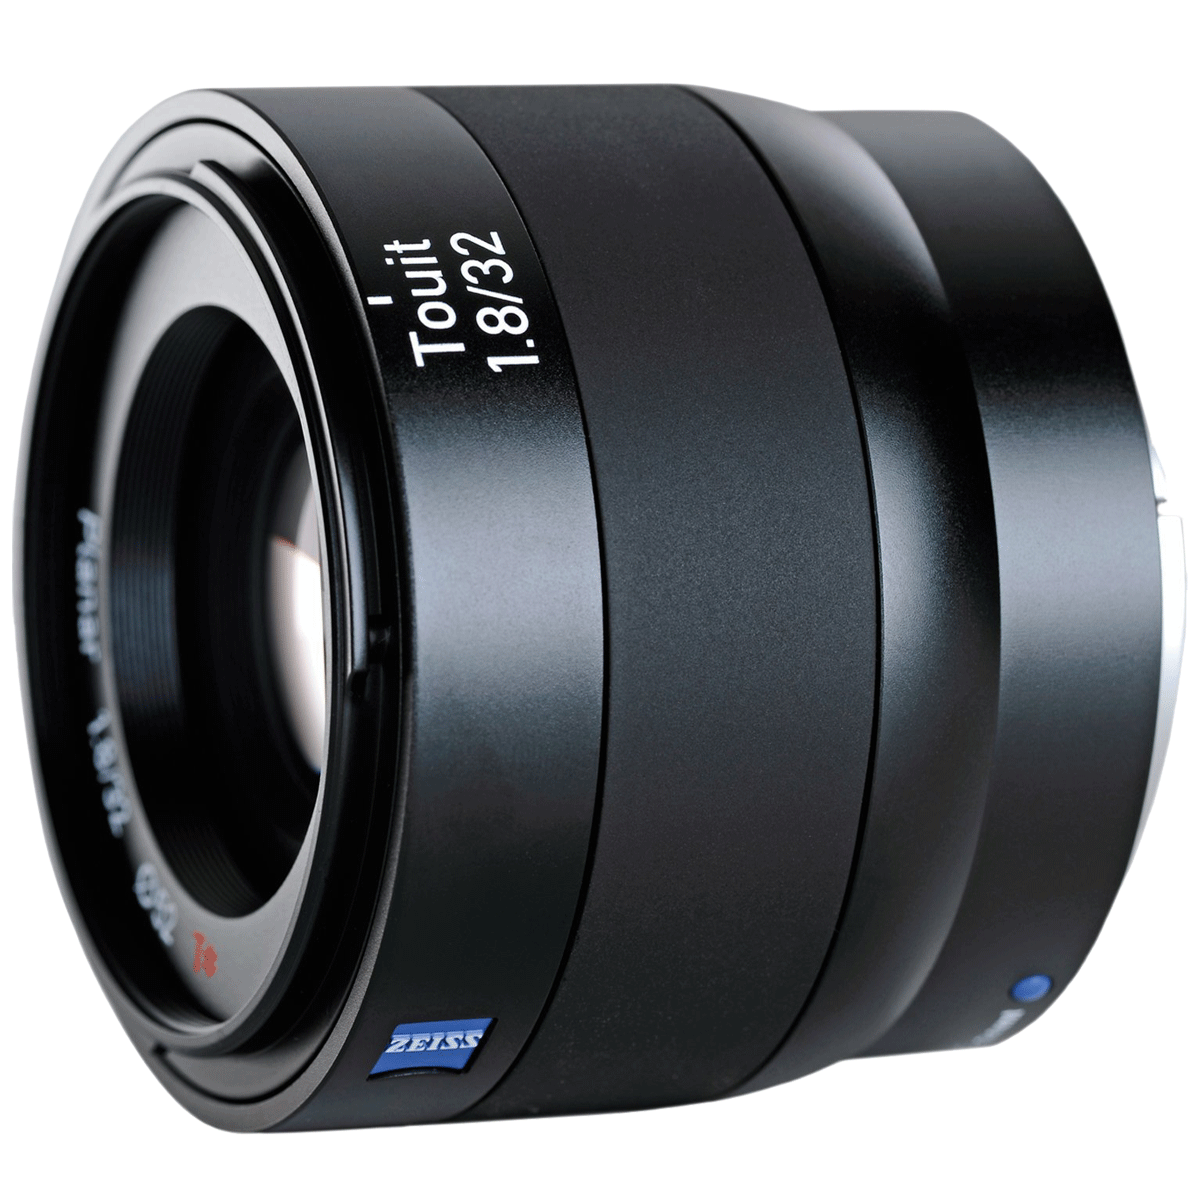 Carl Zeiss Touit 32 mm f/1.8 – f/22 Lens for Sony E-Mount and Fujifilm X-Mount Mirrorless Cameras (Smooth and Reliable Autofocus, 00000000-2030-678, Black)_1